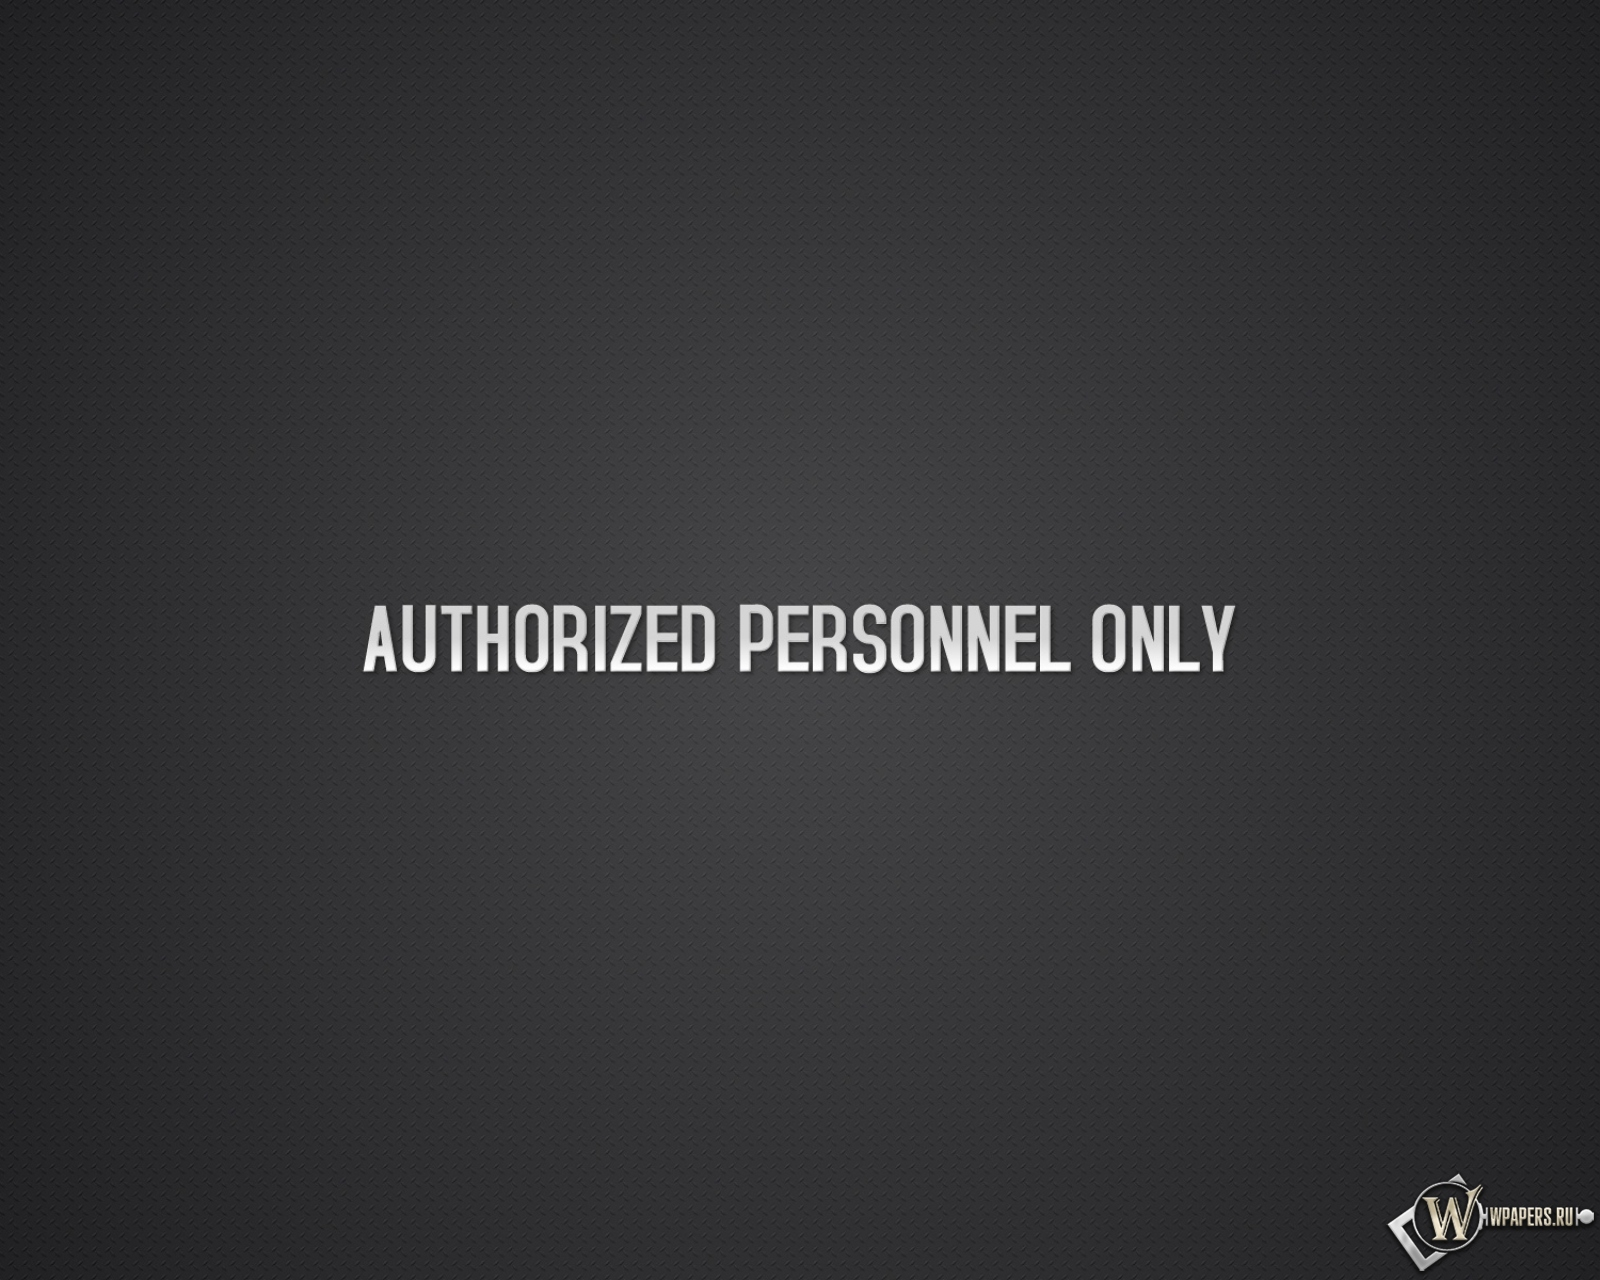 Authorized personnel only 1600x1280